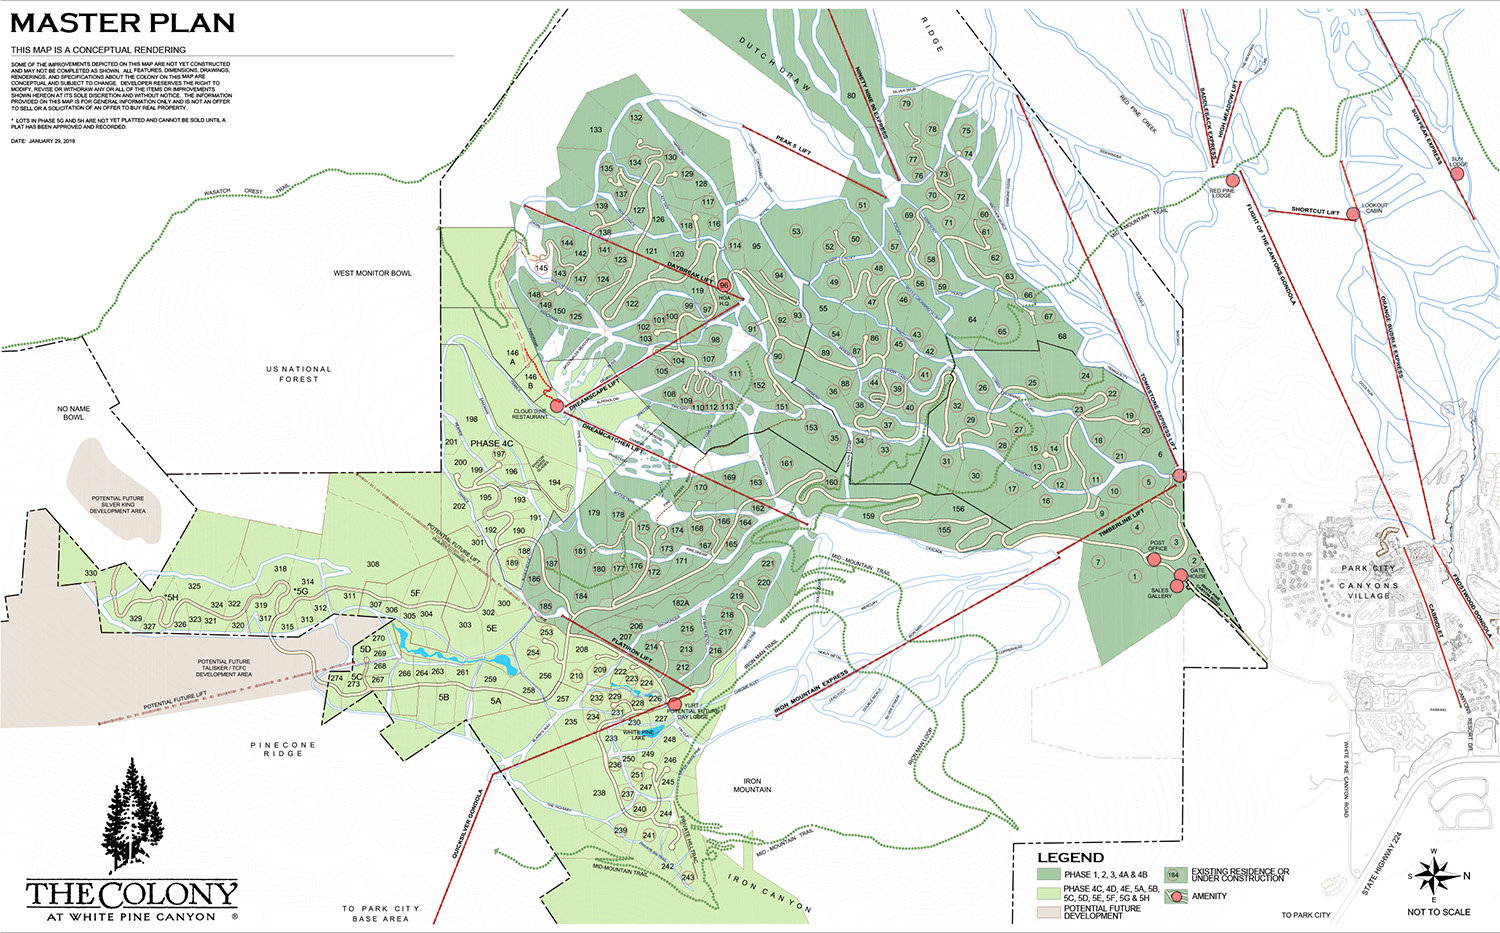 The Colony at White Pine Canyon Plat Map